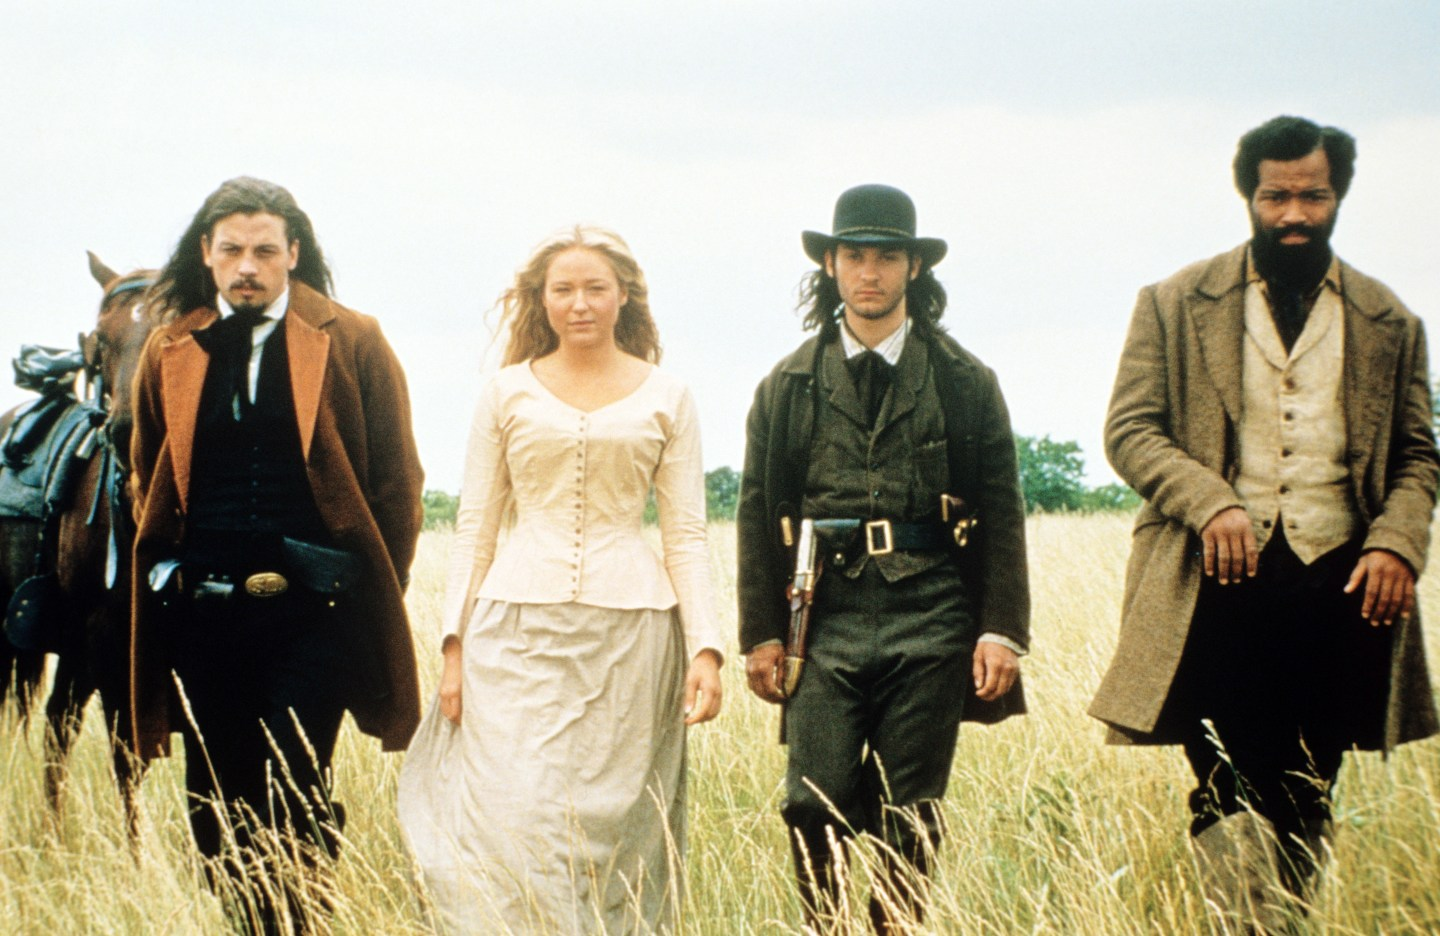 RIDE WITH THE DEVIL, from left: Skeet Ulrich, Jewel, Tobey Maguire, Jeffrey Wright, 1999, © USA Films/courtesy Everett Collection